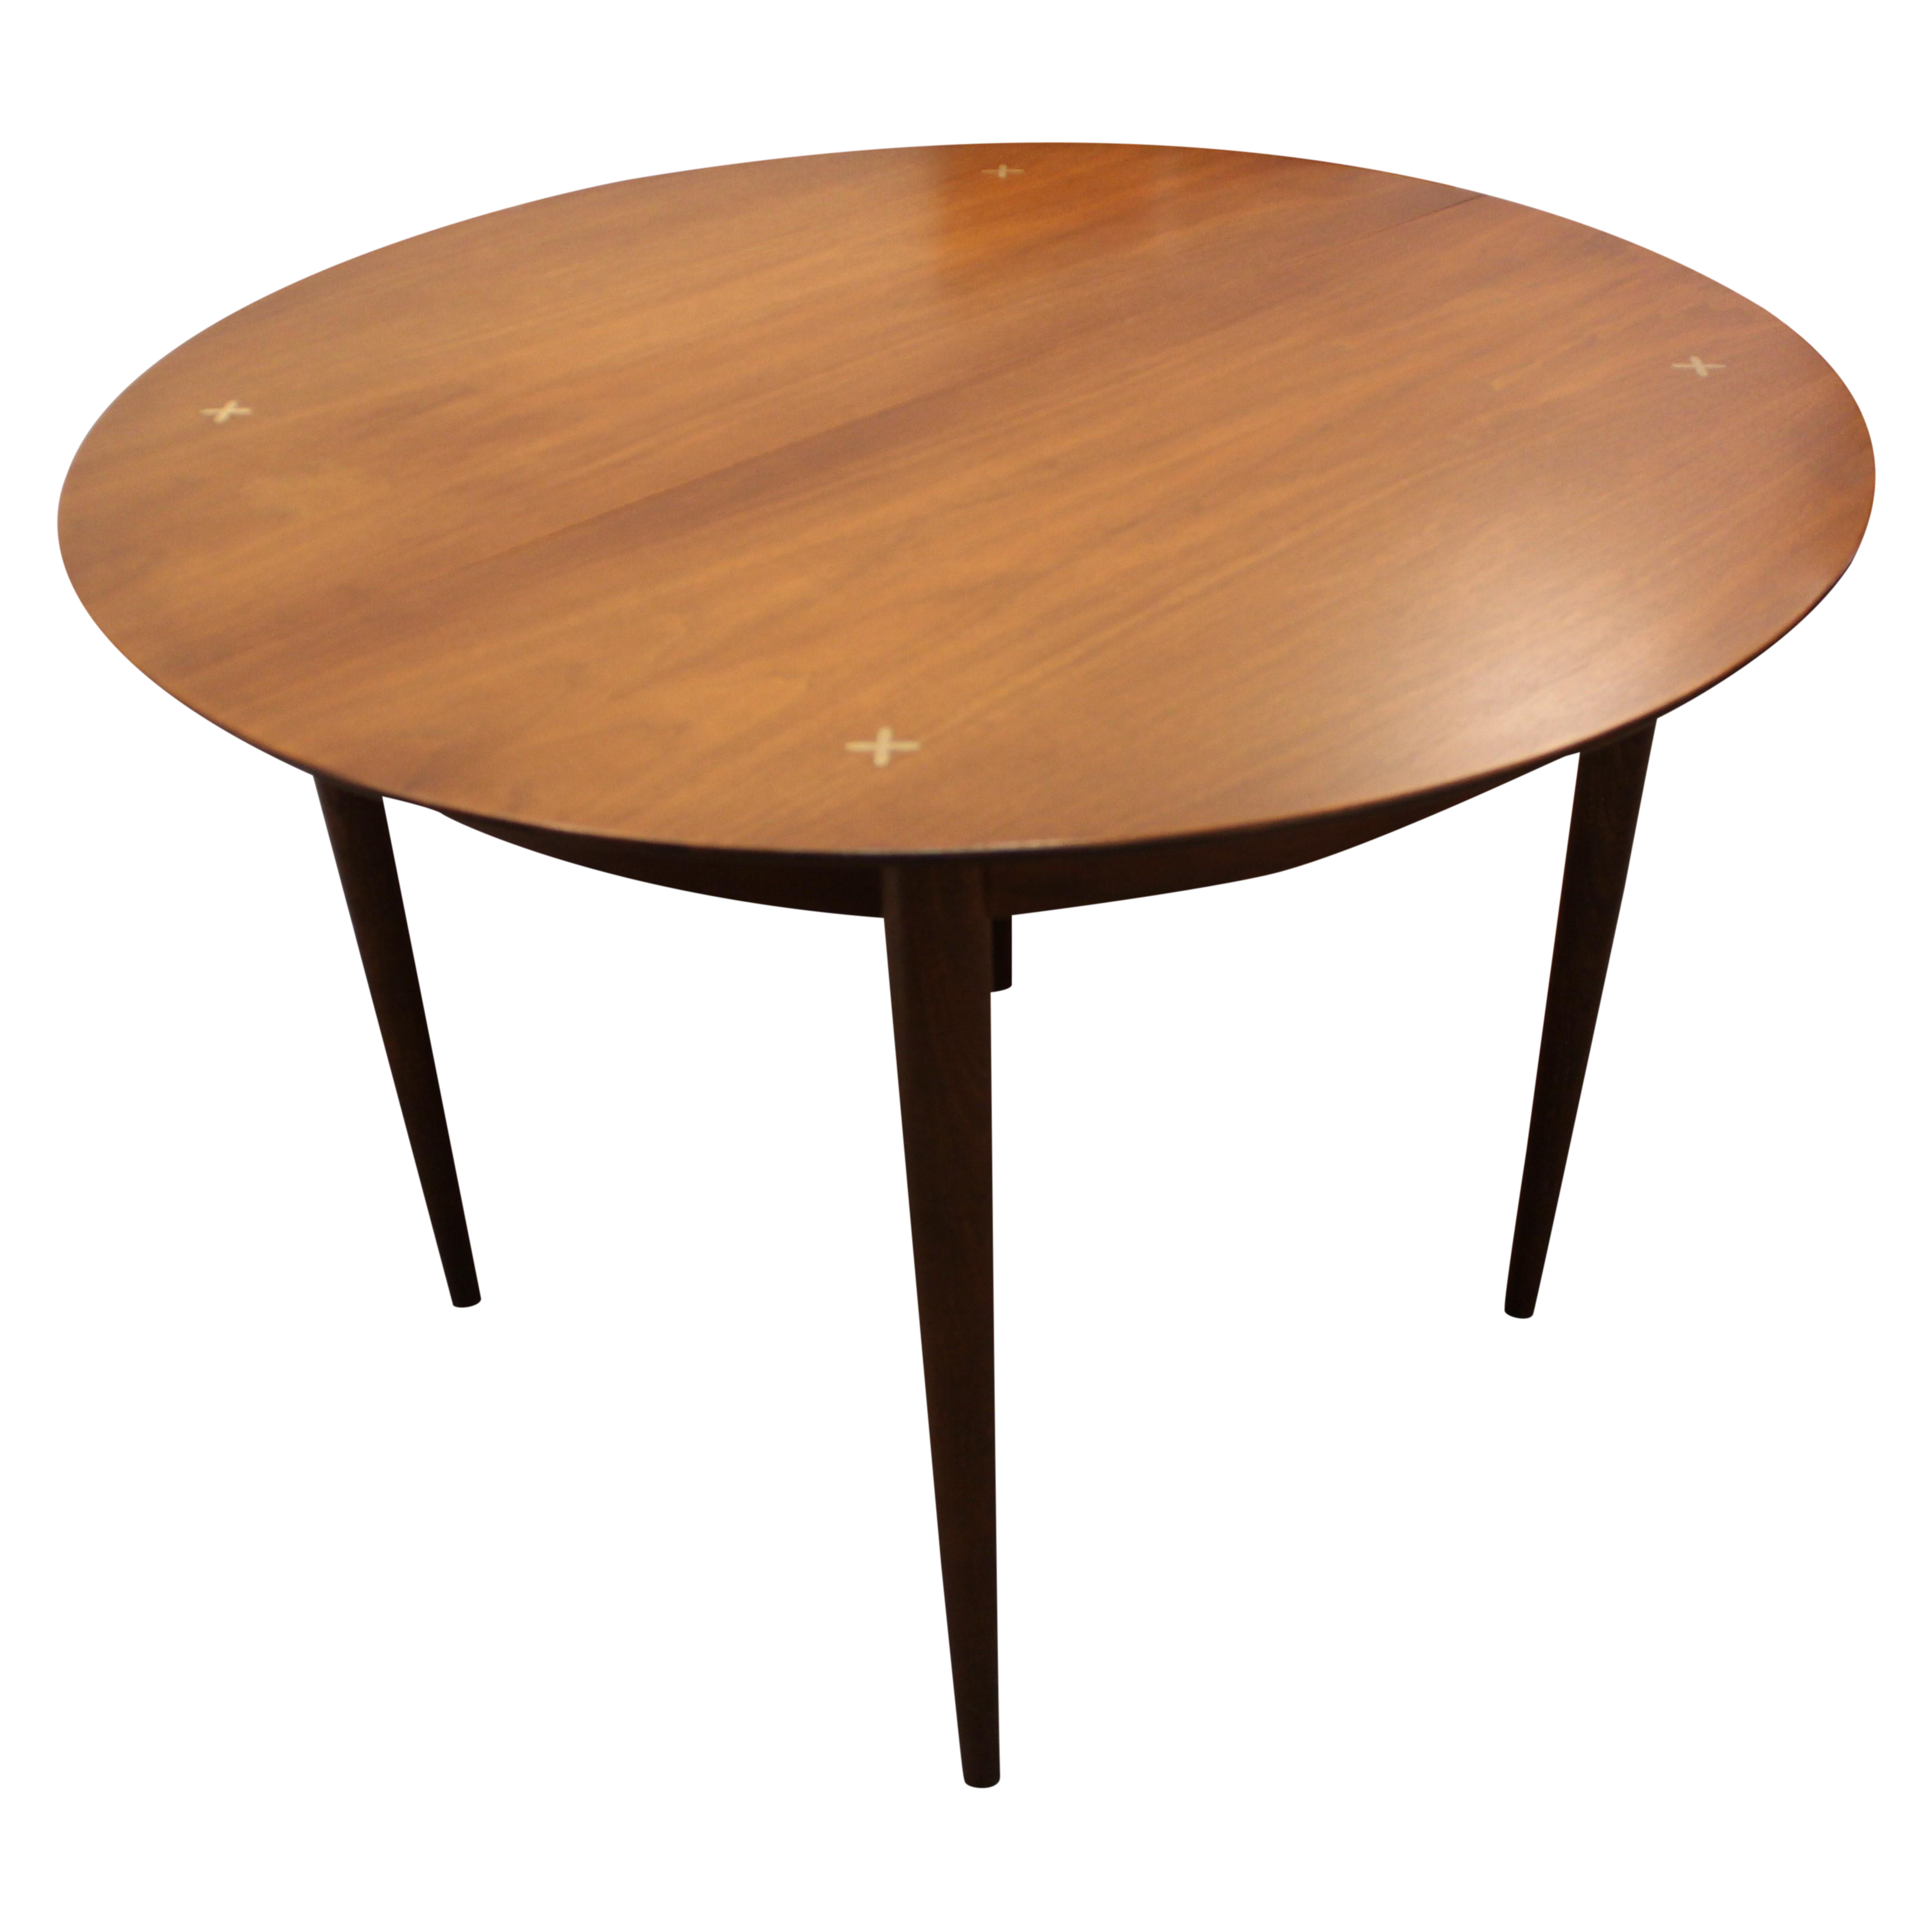 100 mid century modern round dining table dining tables mid